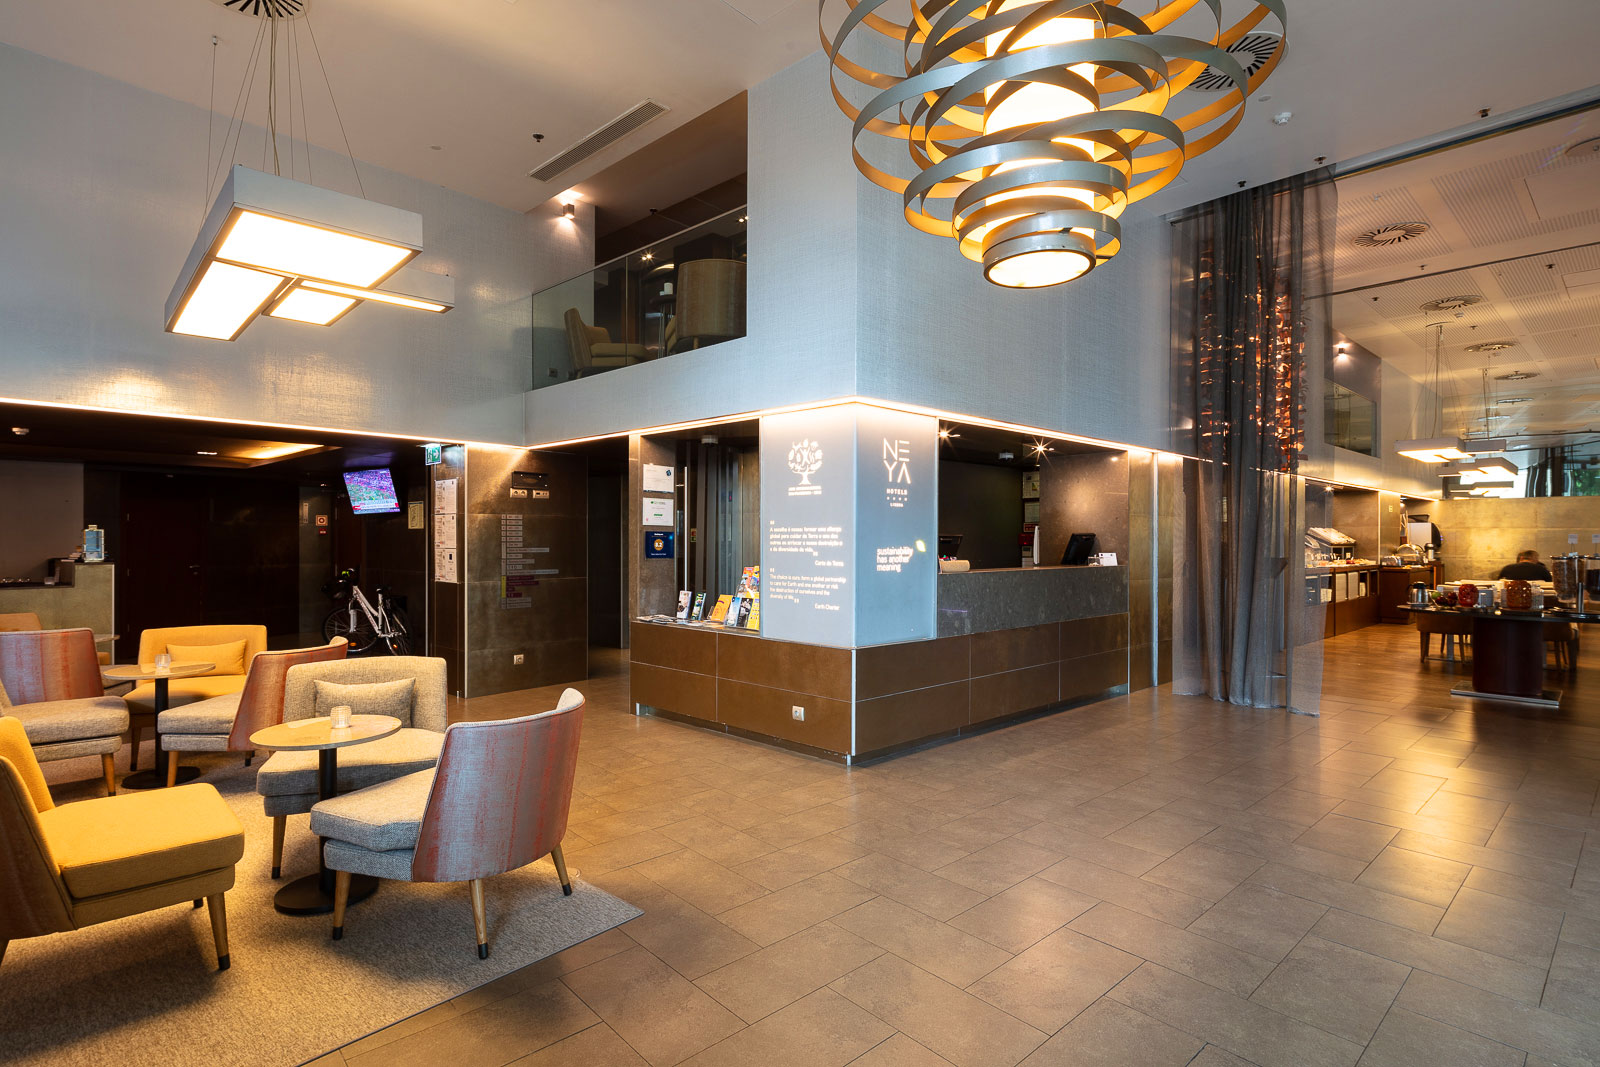 Lobby des Neya Eco Hotels in Lissabon